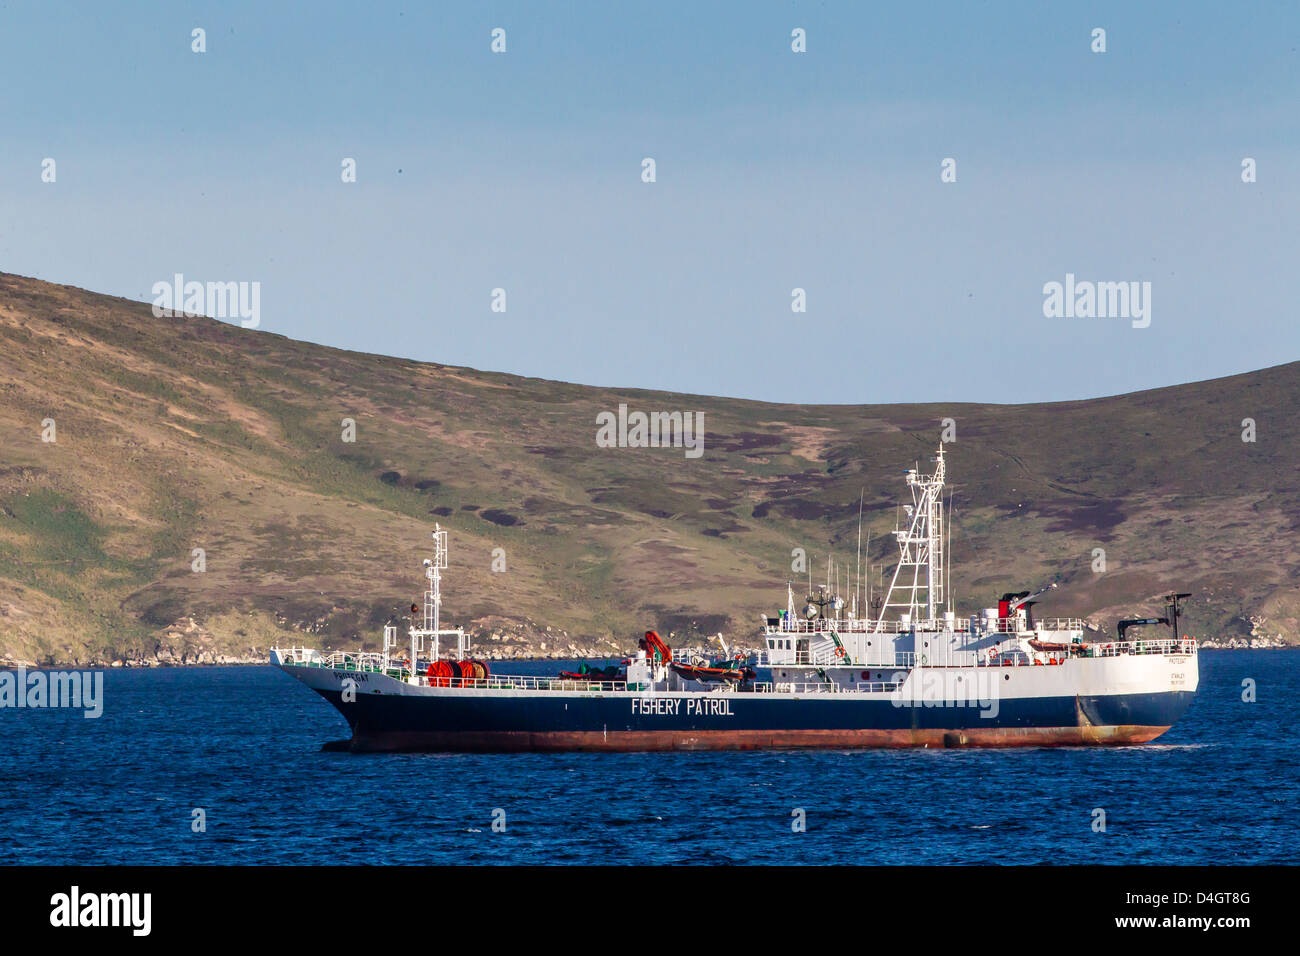 Fishery Patrol ship in the port of Stanley, East Falkland Island, South Atlantic Ocean, South America - Stock Image